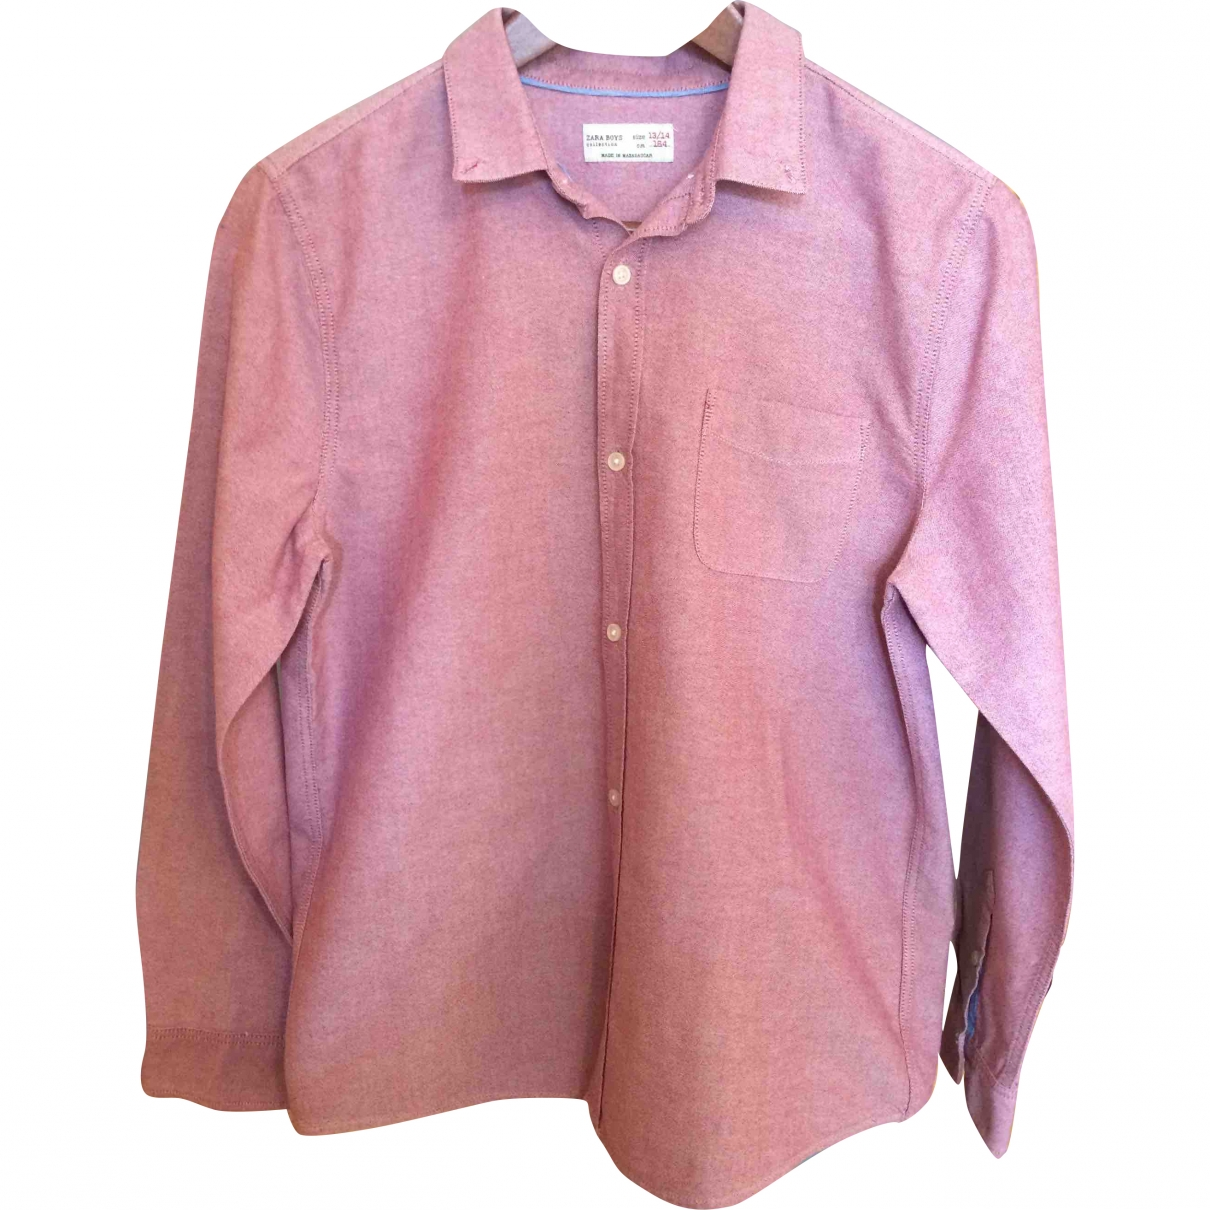 Zara \N Pink Cotton  top for Kids 14 years - S FR